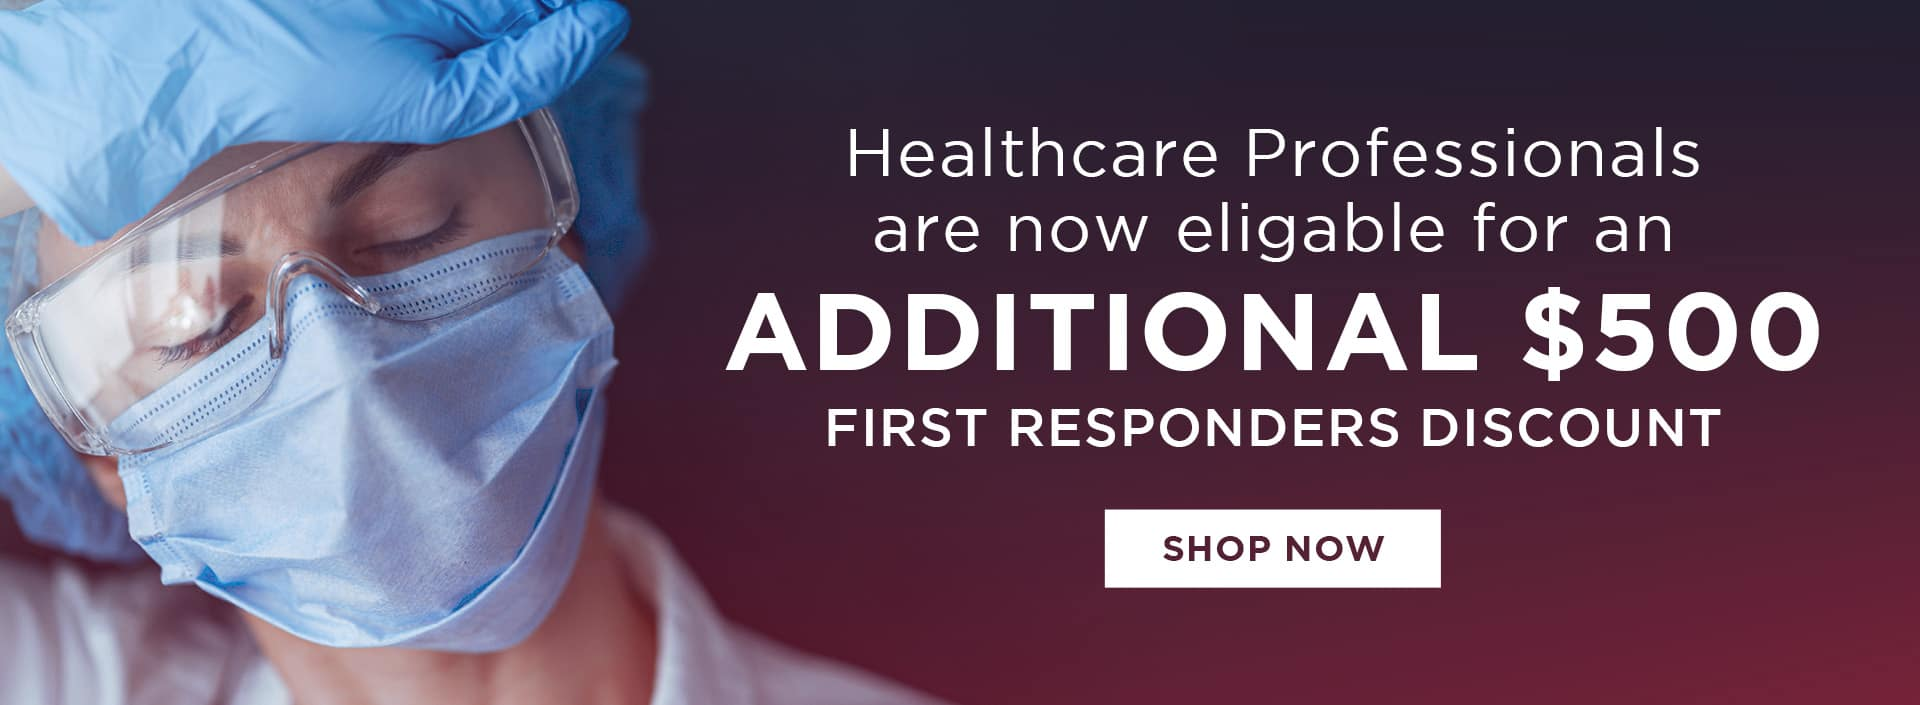 Additional $500 First Responders' Discount Now Includes Healthcare Workers